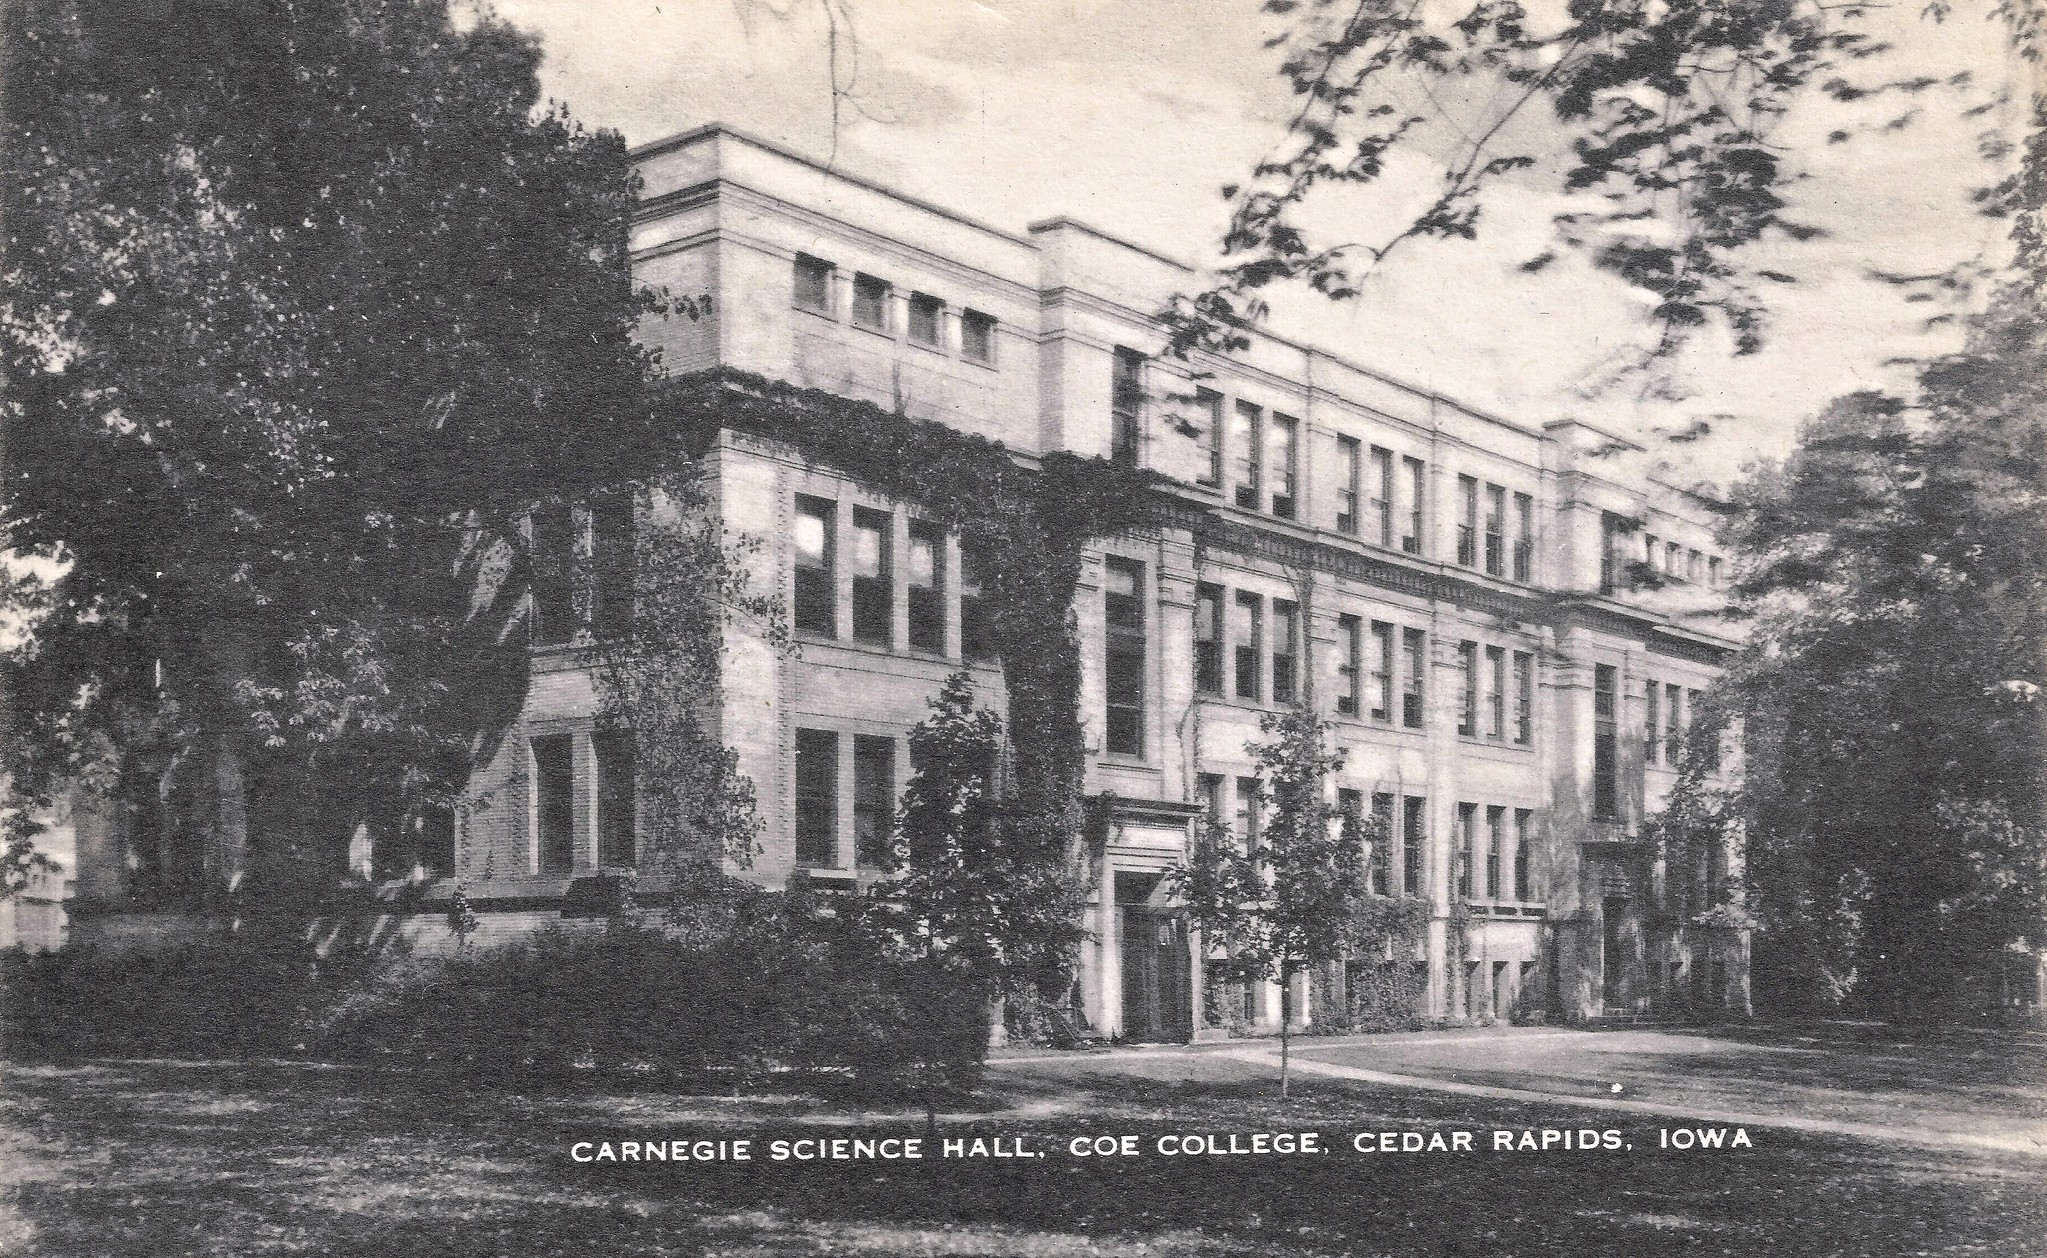 The Chilling Tale Of Coe College Is One Of Iowa's Spookiest Ghost Stories